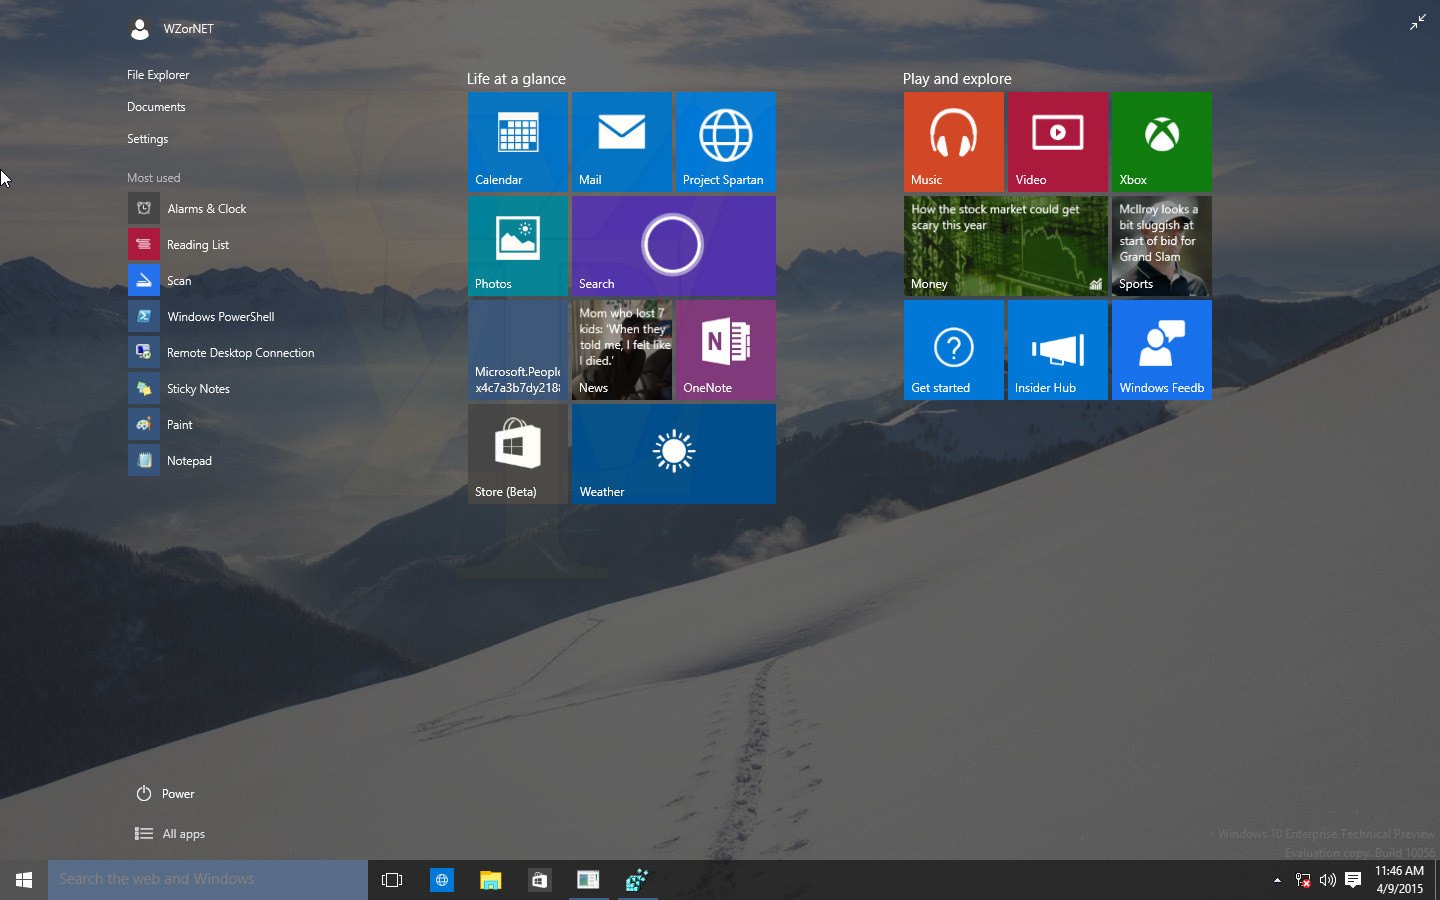 A new Recycle Bin icon is spotted in the latest Windows 10